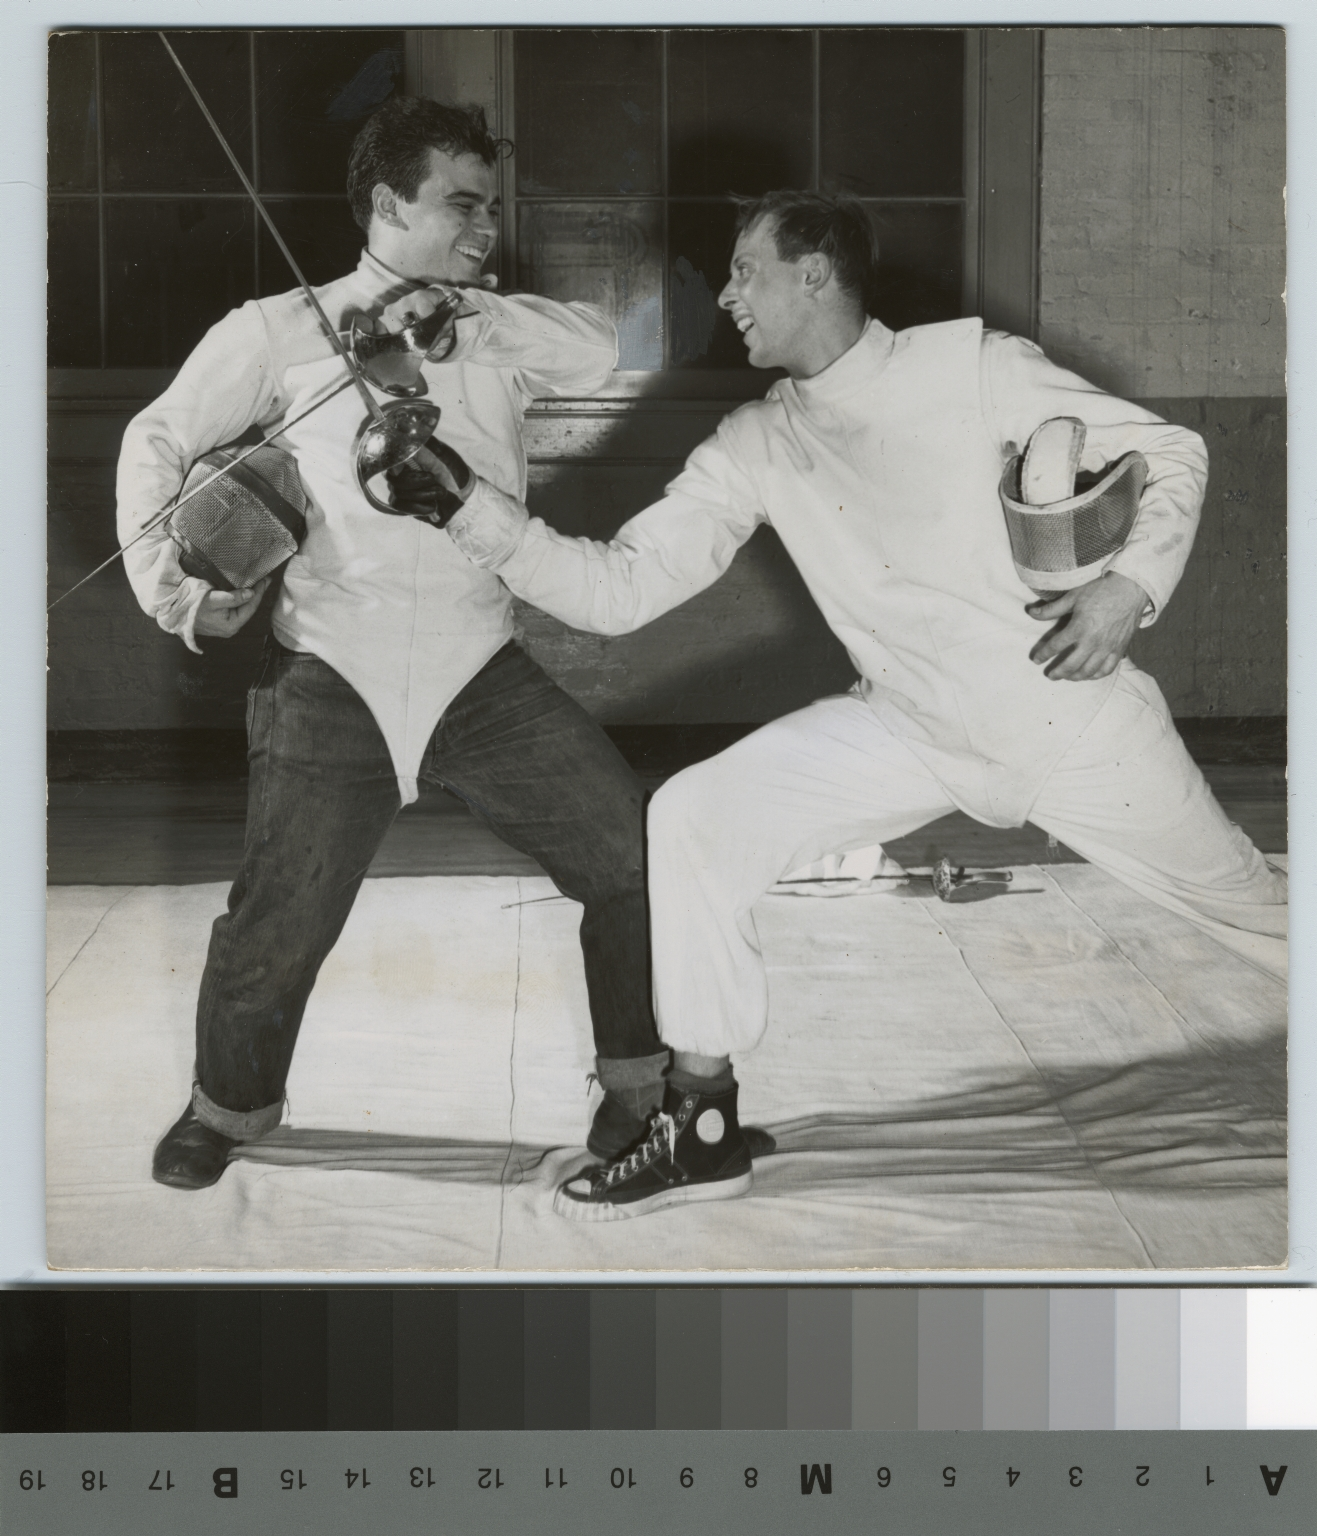 Student activities, two male members of the Rochester Institute of Technology fencing team in a mock engagement with Sabers, 1951